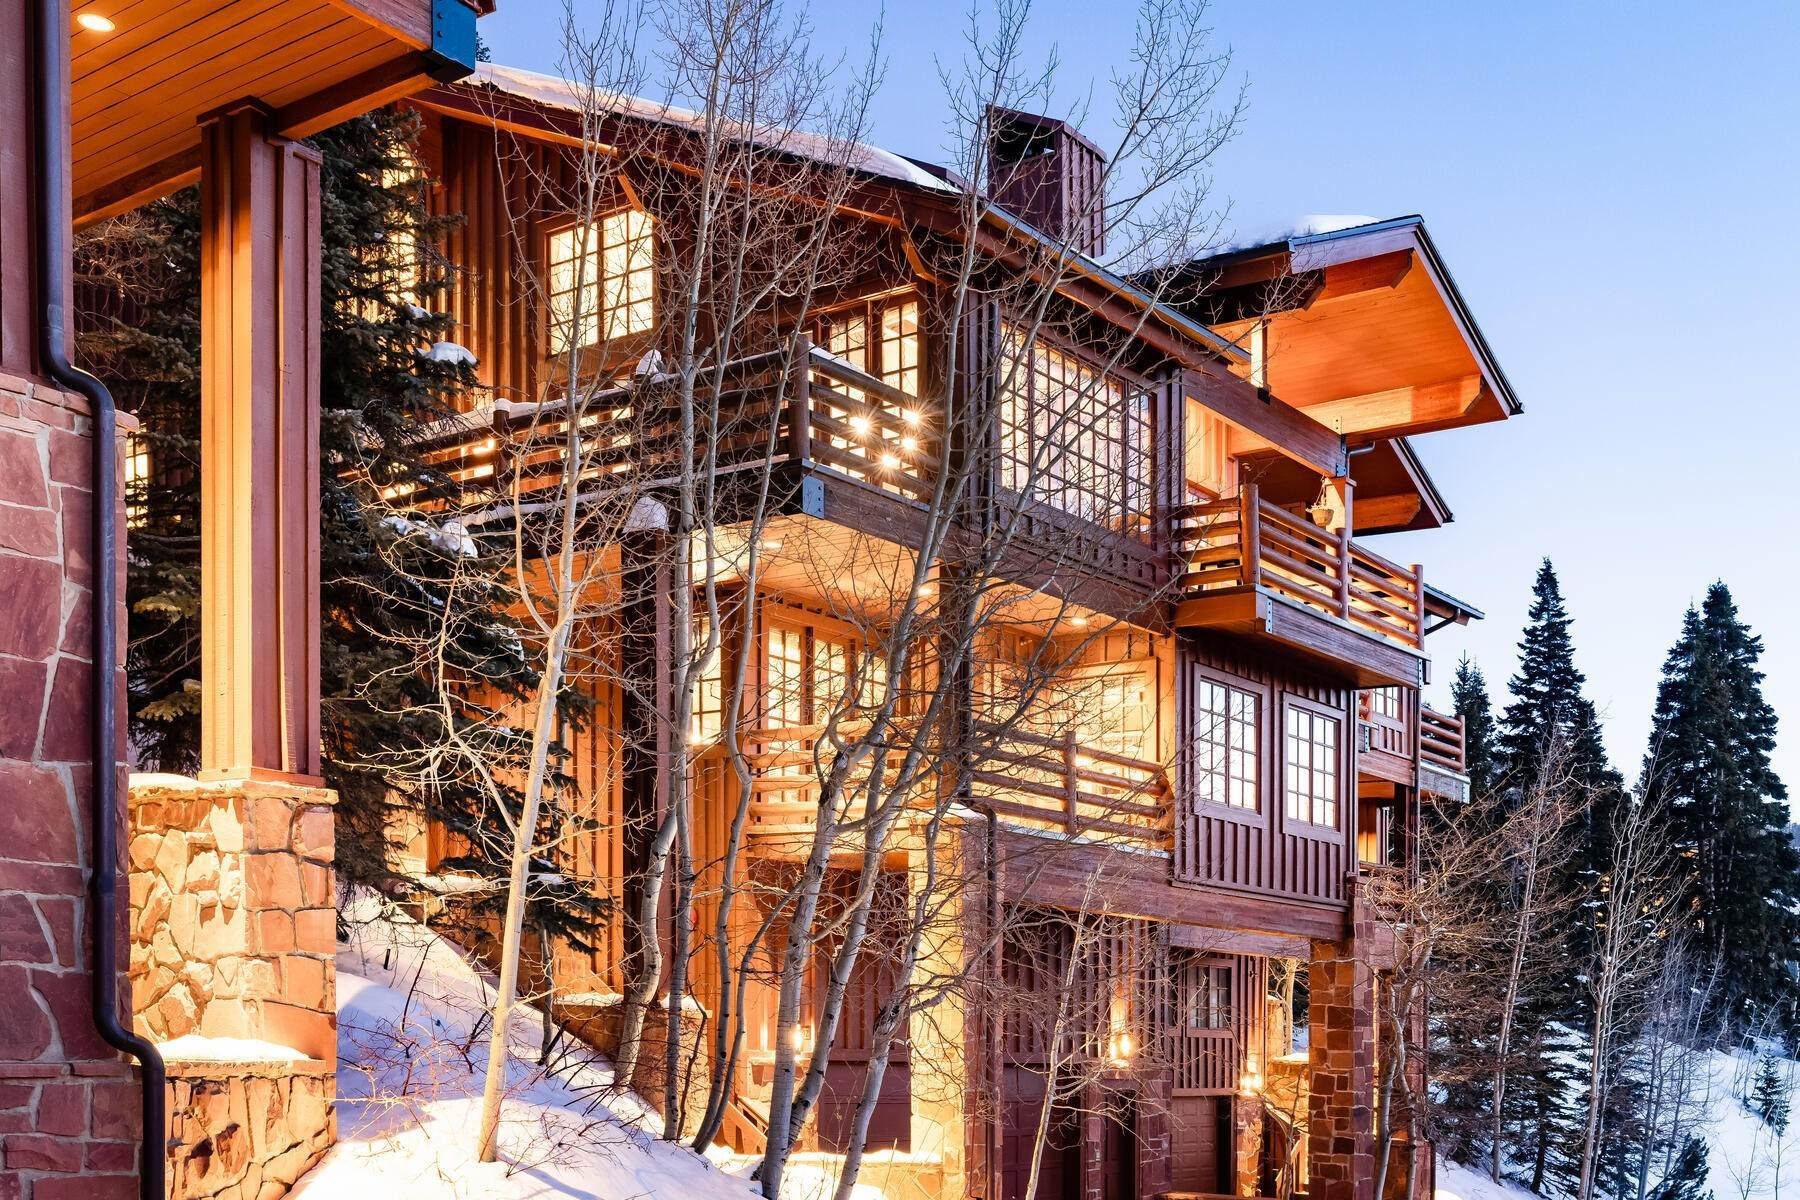 Property for Sale at Prime Ski-In/Ski-Out Location in the Heart of Deer Valley Directly Off Ski Run 8200 Royal Street E #42 Park City, Utah 84060 United States